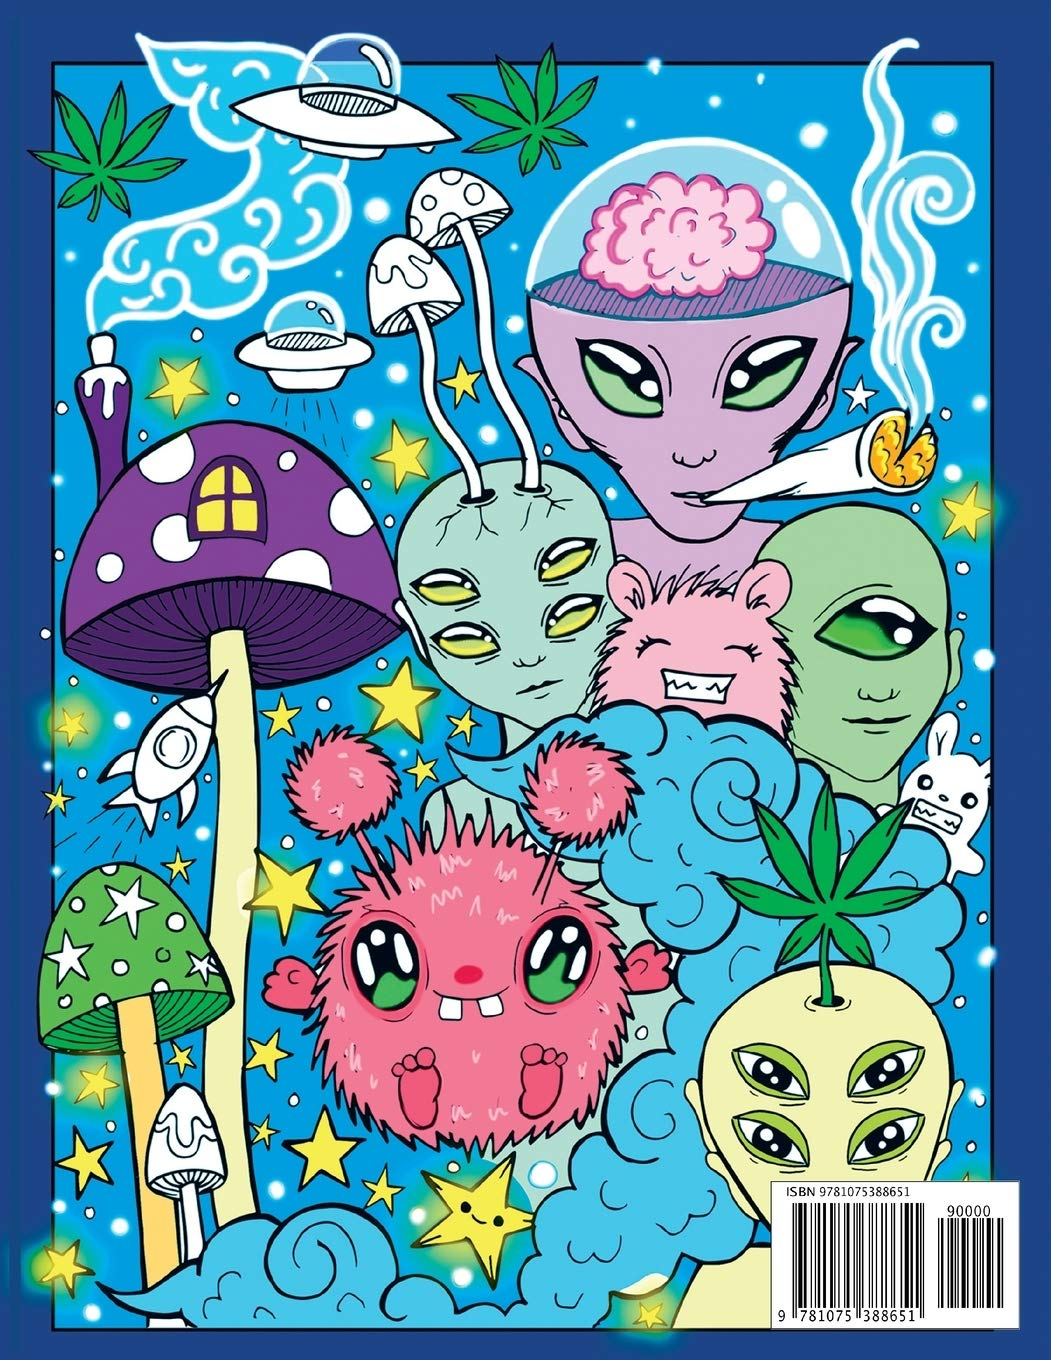 - Stoner Coloring Book For Adults: The Stoner's Psychedelic Coloring